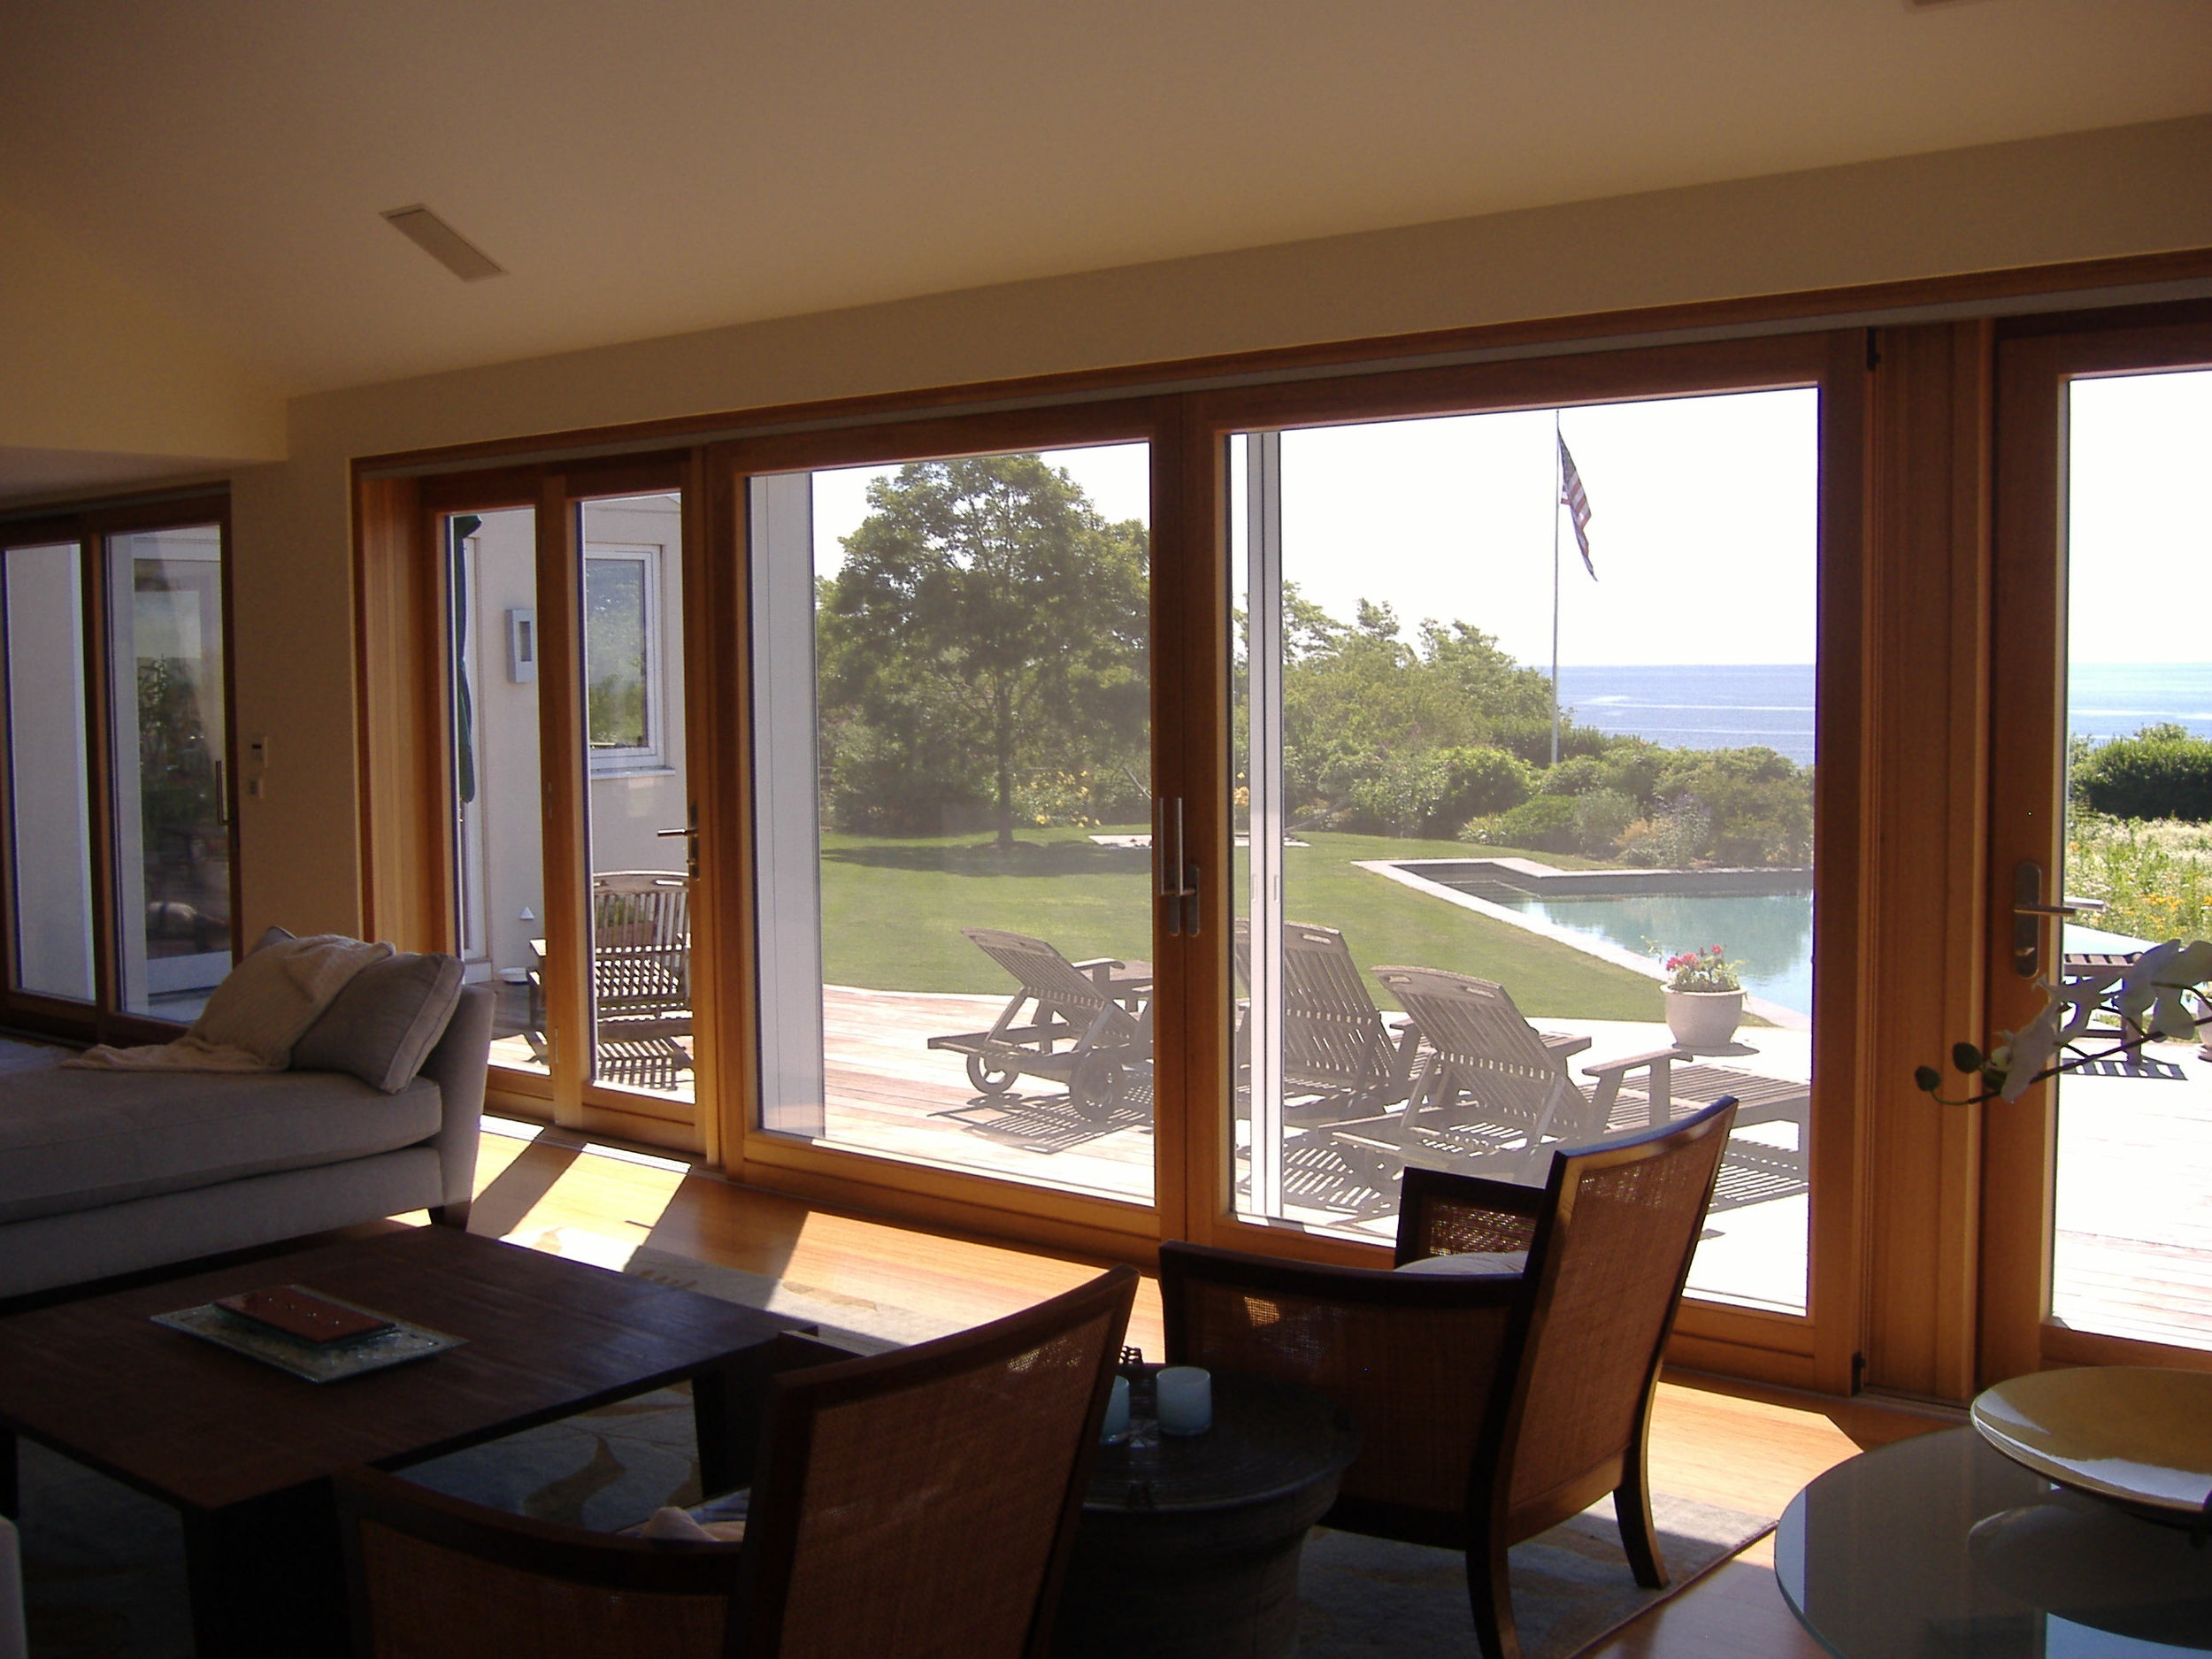 Lift and slide door with French doors as sidelights